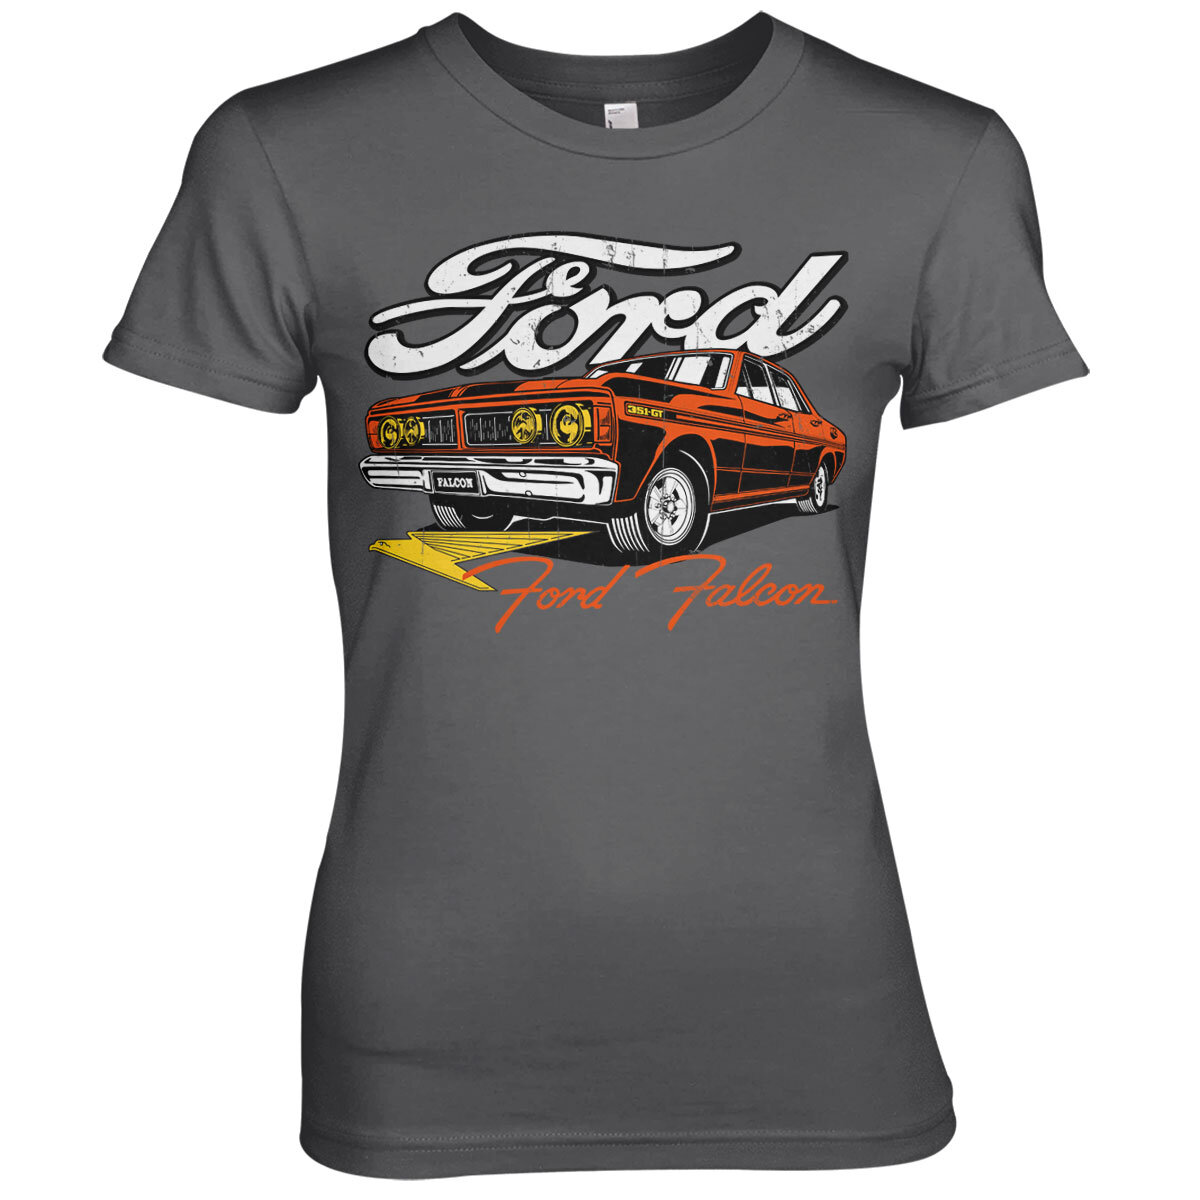 Ford Falcon Girly Tee